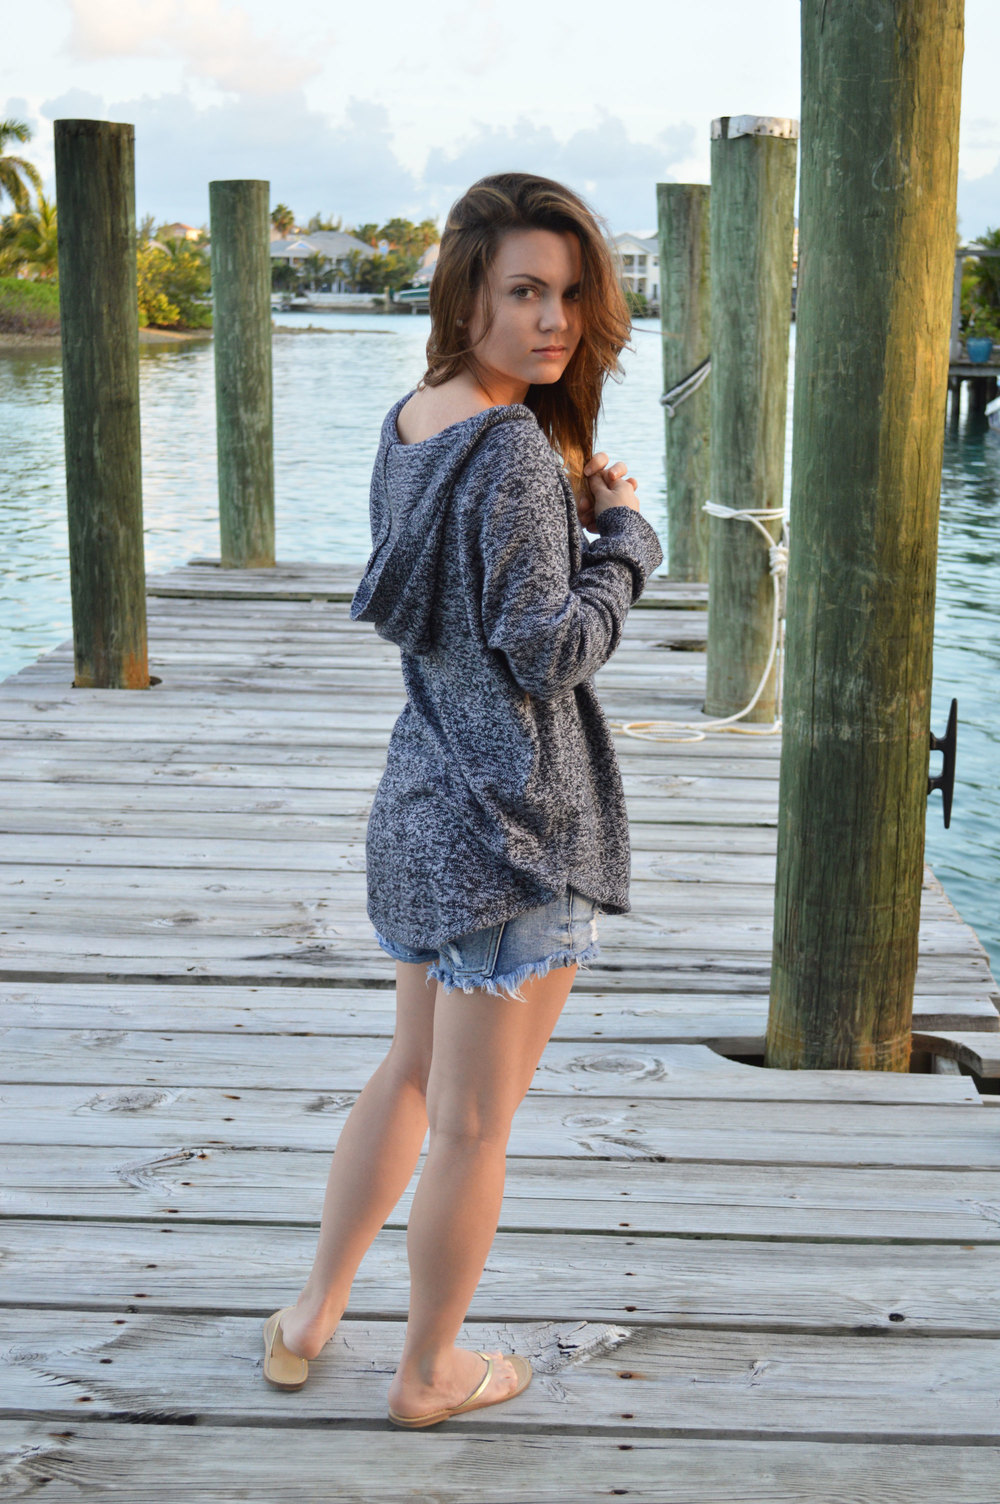 GAP-oversized-sweater-nassau-bahamas-style-blogger-dock-forever21-favorite-shorts-jcrew-sandals-sunset.jpeg